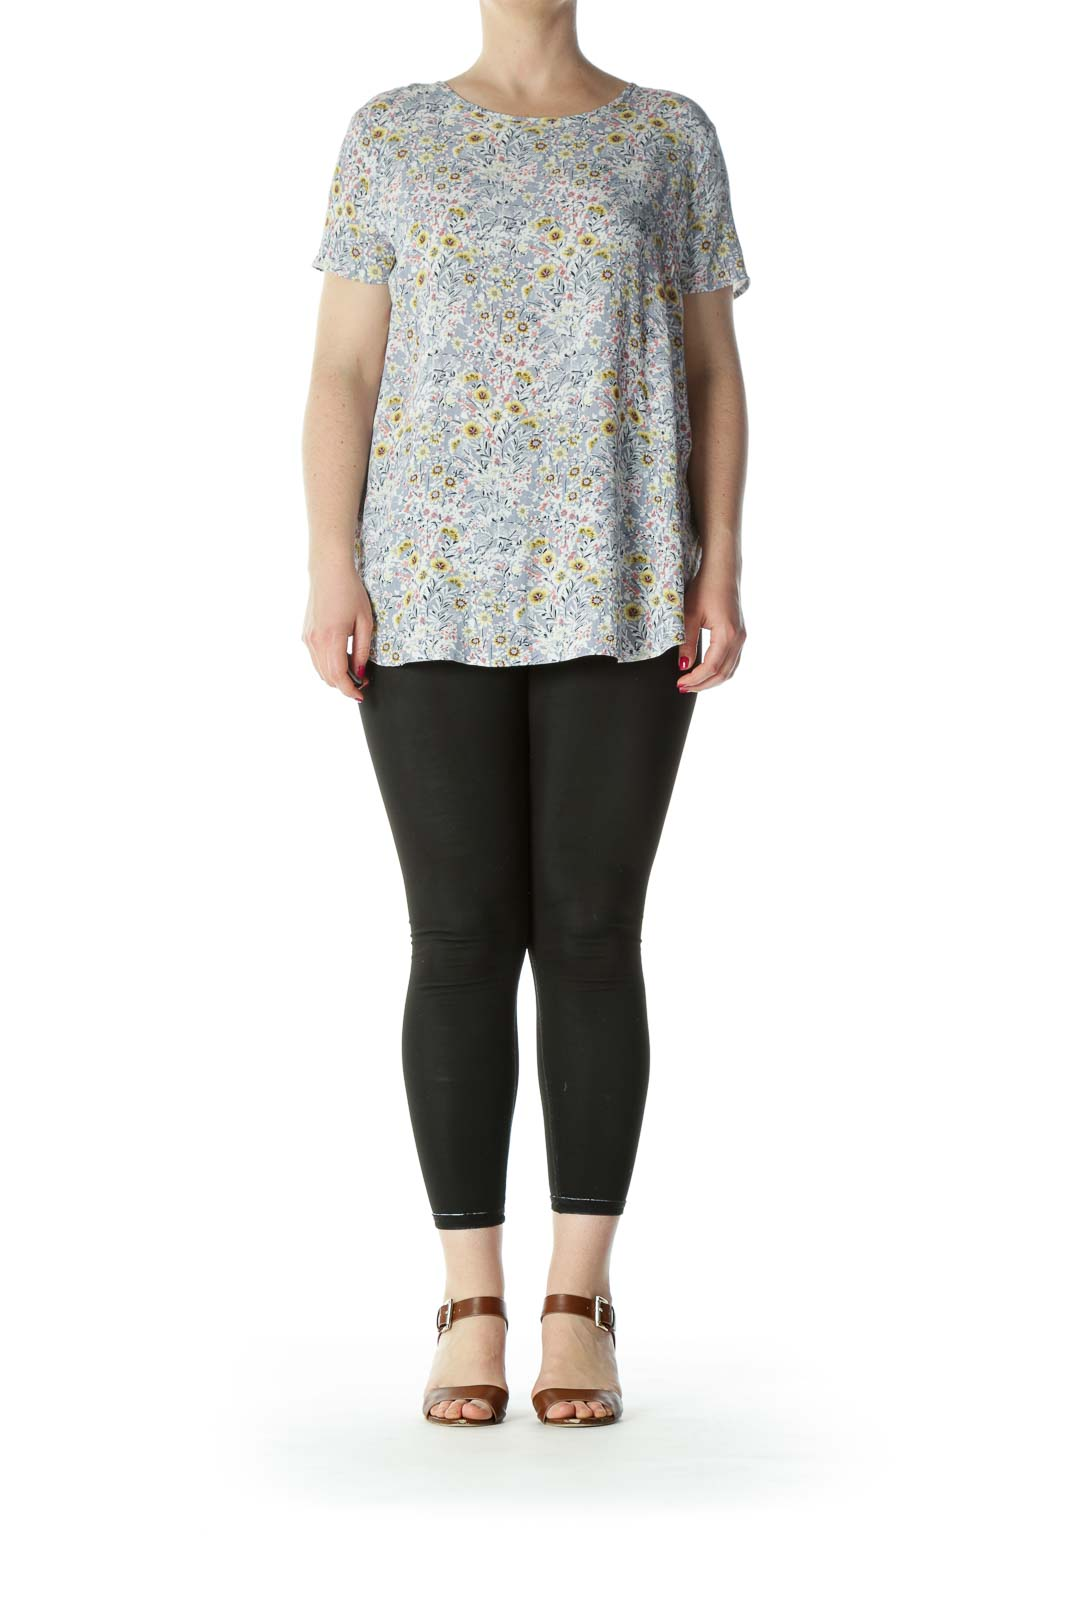 Gray/White/Yellow Floral-Print Keyhole-Back Flared Top